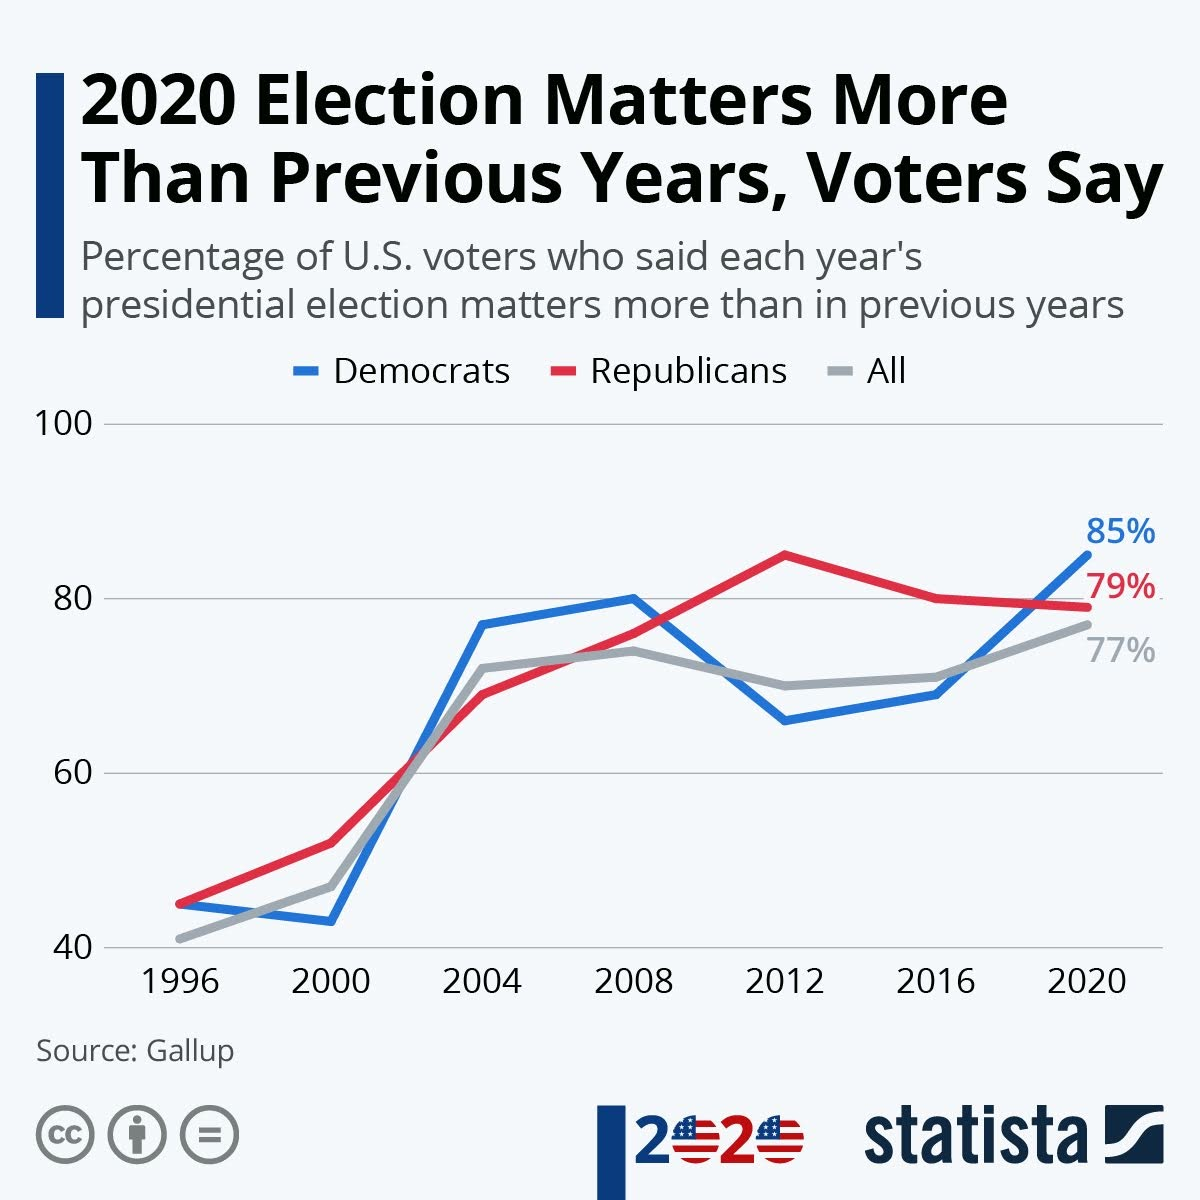 2020-election-matters-more-than-previous-years-voters-say-infographic